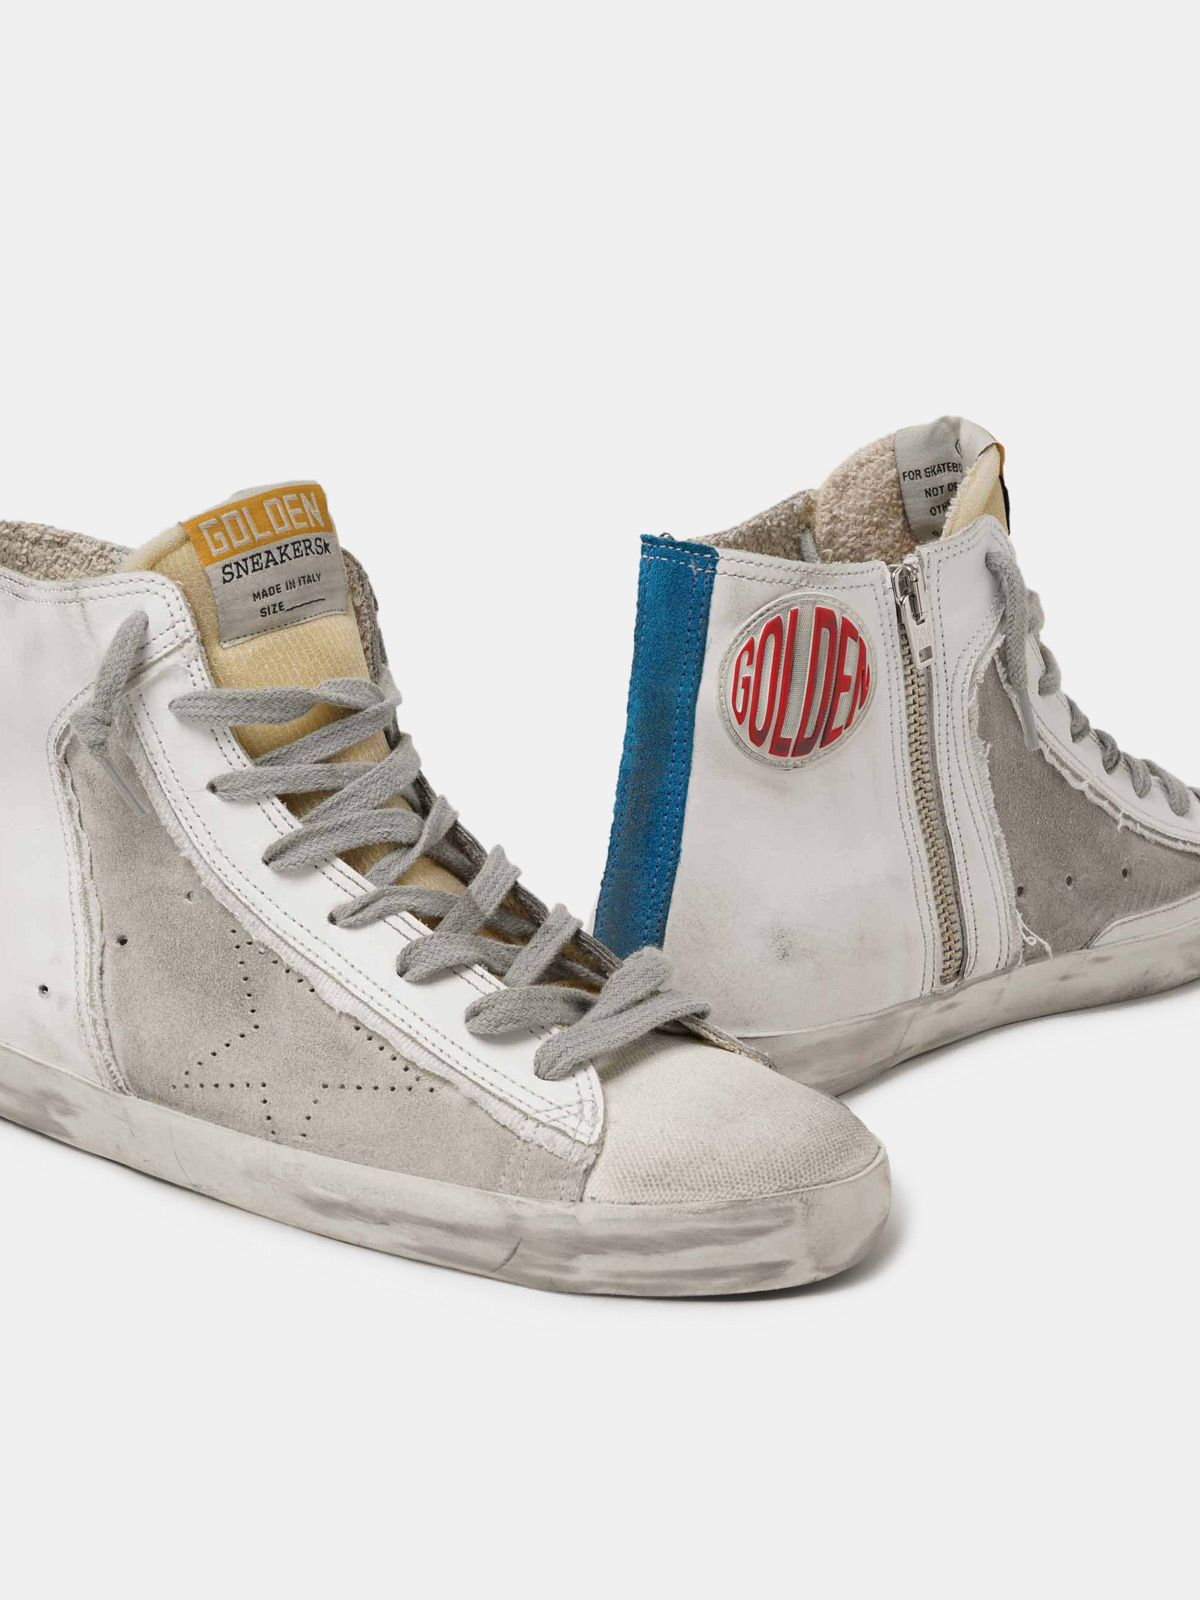 Golden Goose - Men's Limited Edition blue and white Francy sneakers in